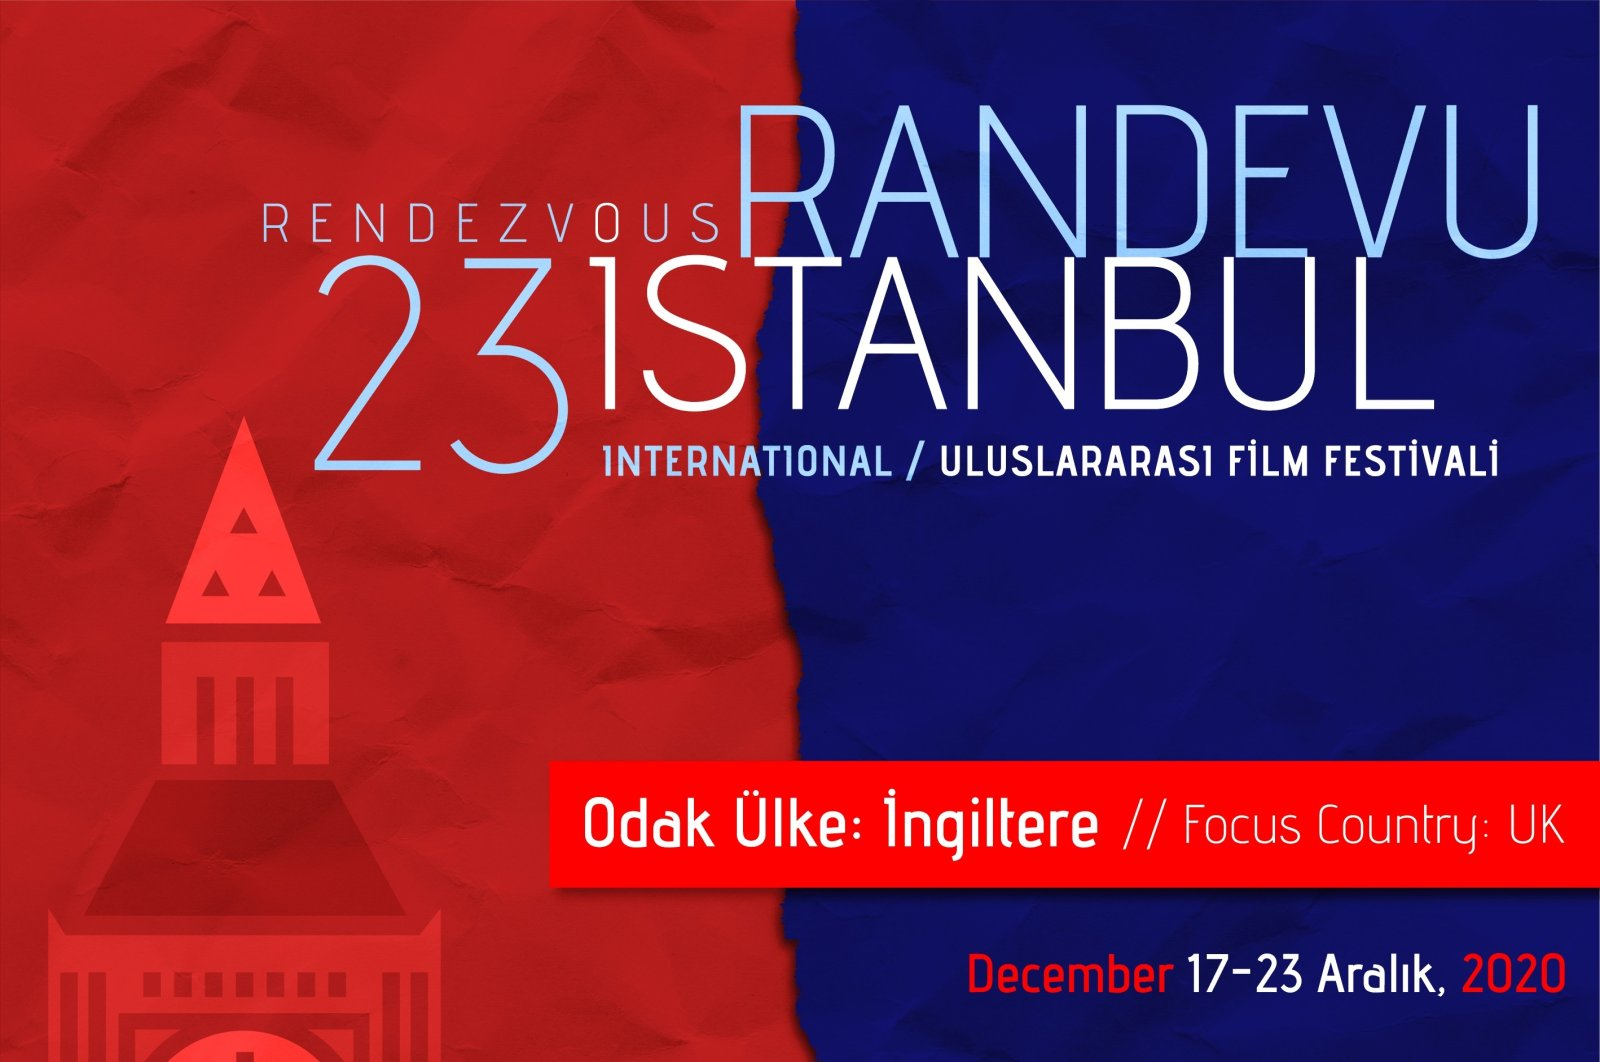 A poster of the 23rd Rendezvous Istanbul International Film Festival.